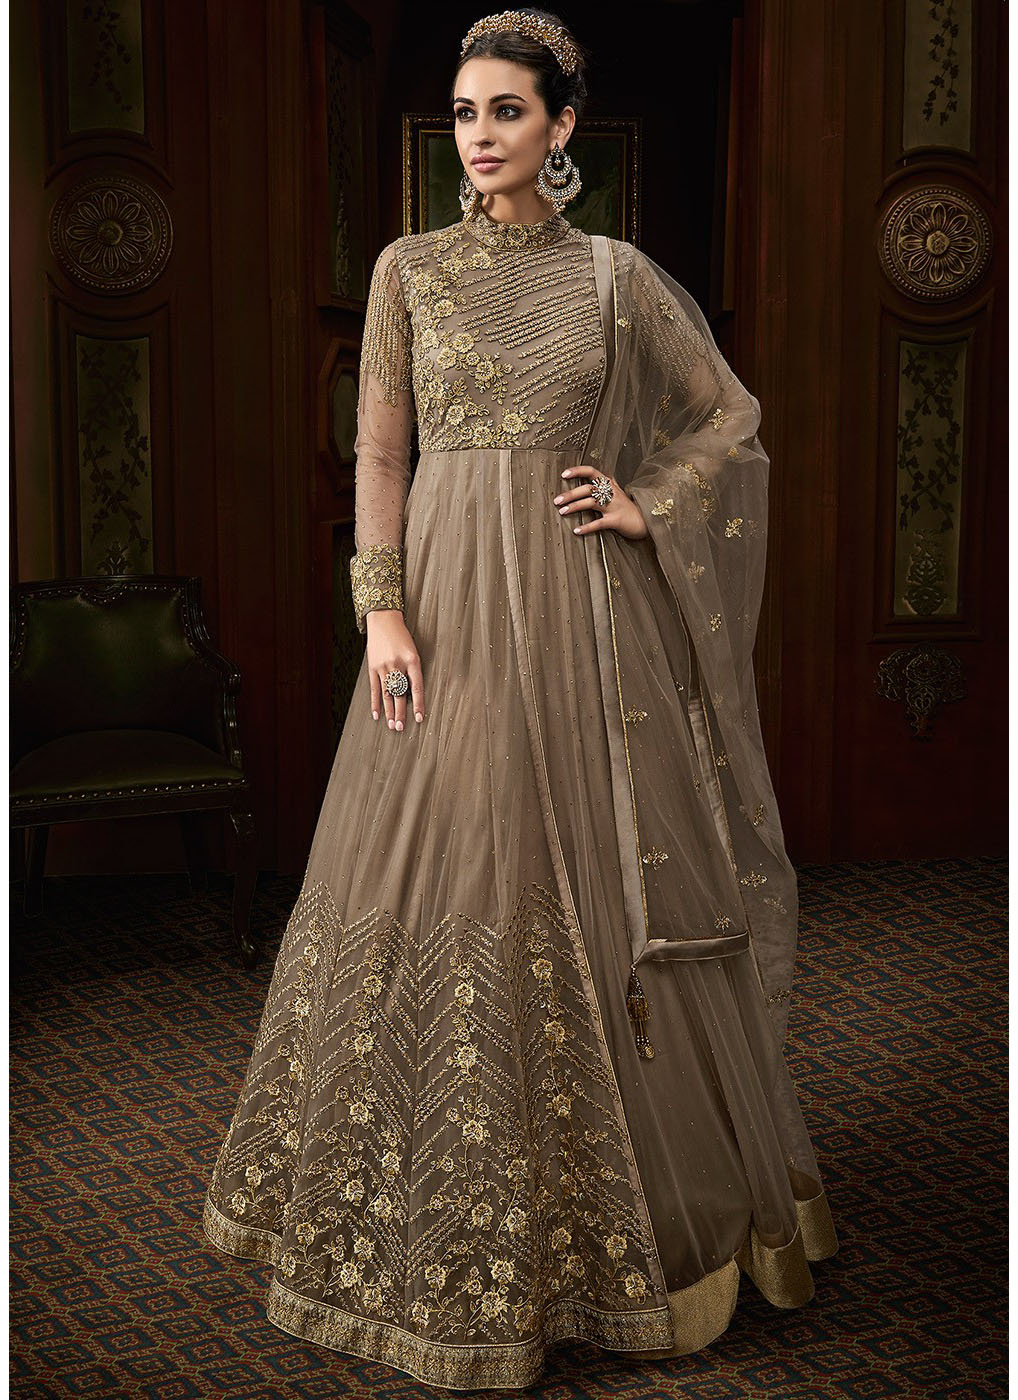 bb1e6123fa8a9 Salwar Suits: Buy Salwar Kameez for Wedding Party Online Page 10 ...